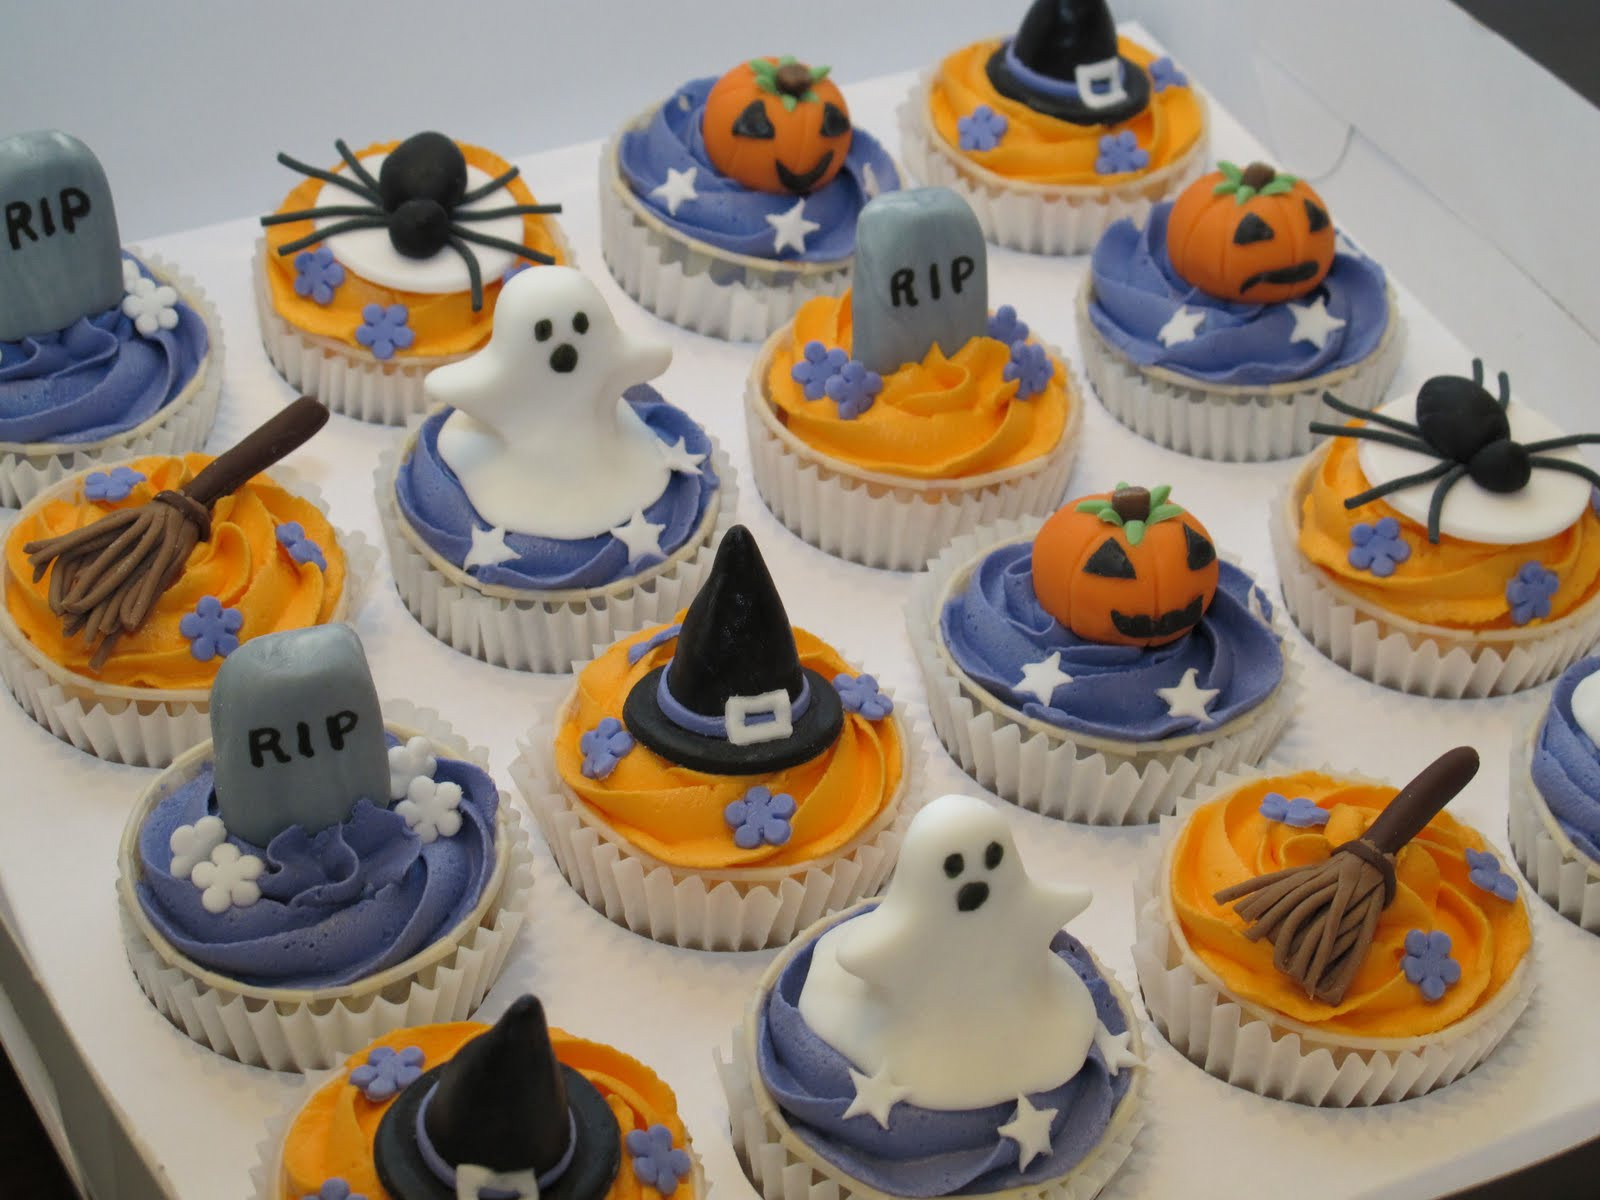 Halloween Cookies And Cupcakes  Pink Oven Cakes and Cookies Halloween cupcake ideas